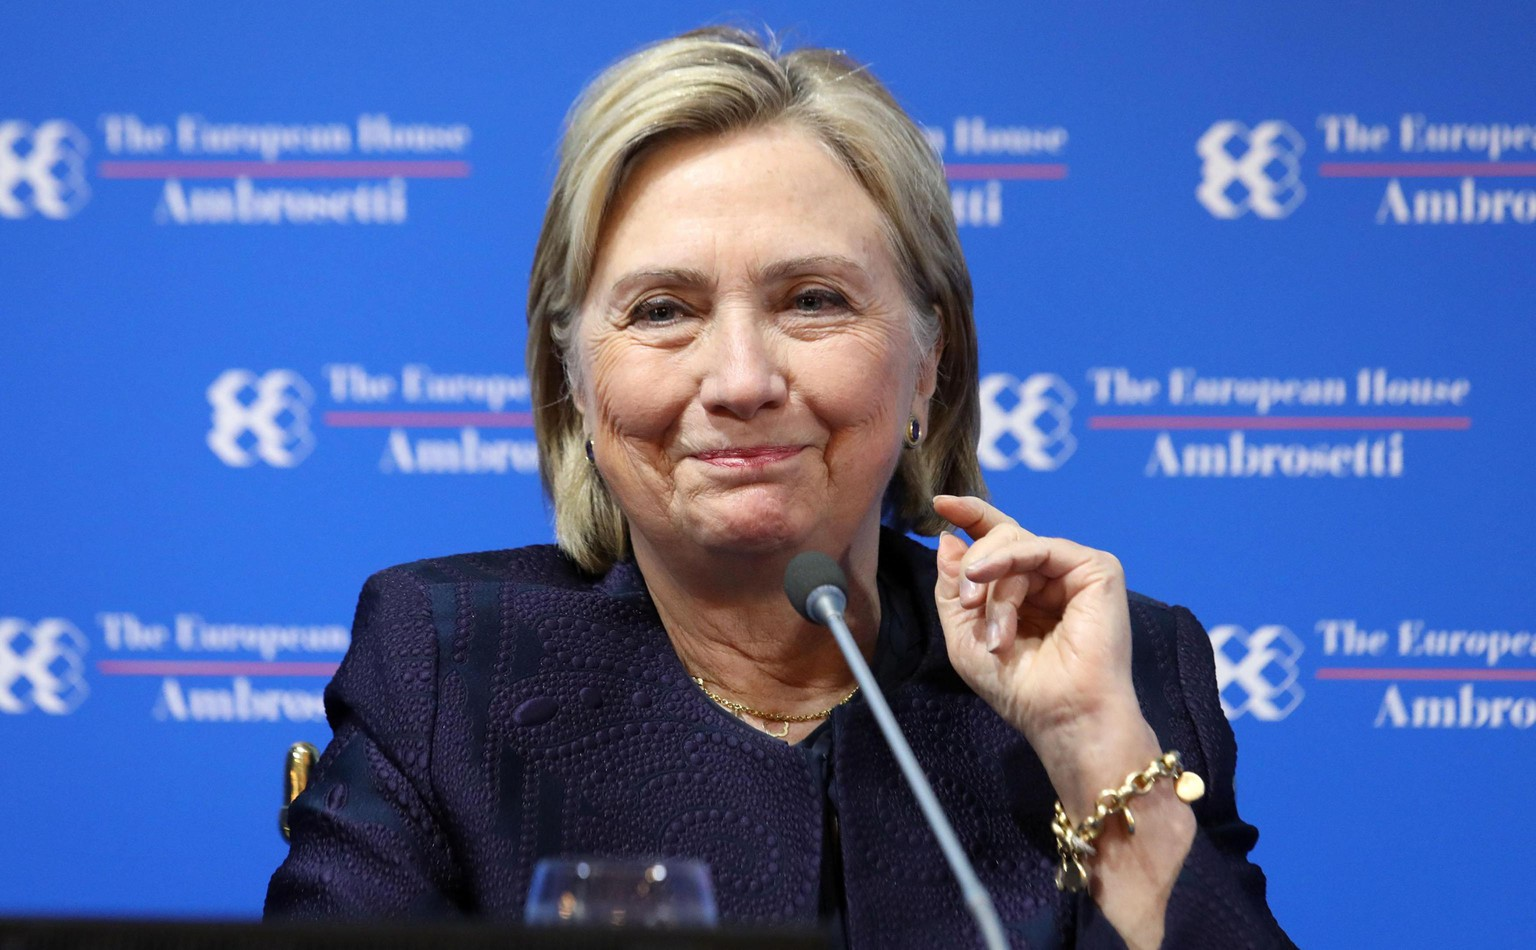 epa07825910 Hillary Rodham Clinton attends during the forum the European house Ambrosetti held in Cernobbio, Italy, 07 September 2019. The 45th editiion edition of the annual international economic conference takes place from 06 to 08 September 2019.  EPA/MATTEO BAZZI